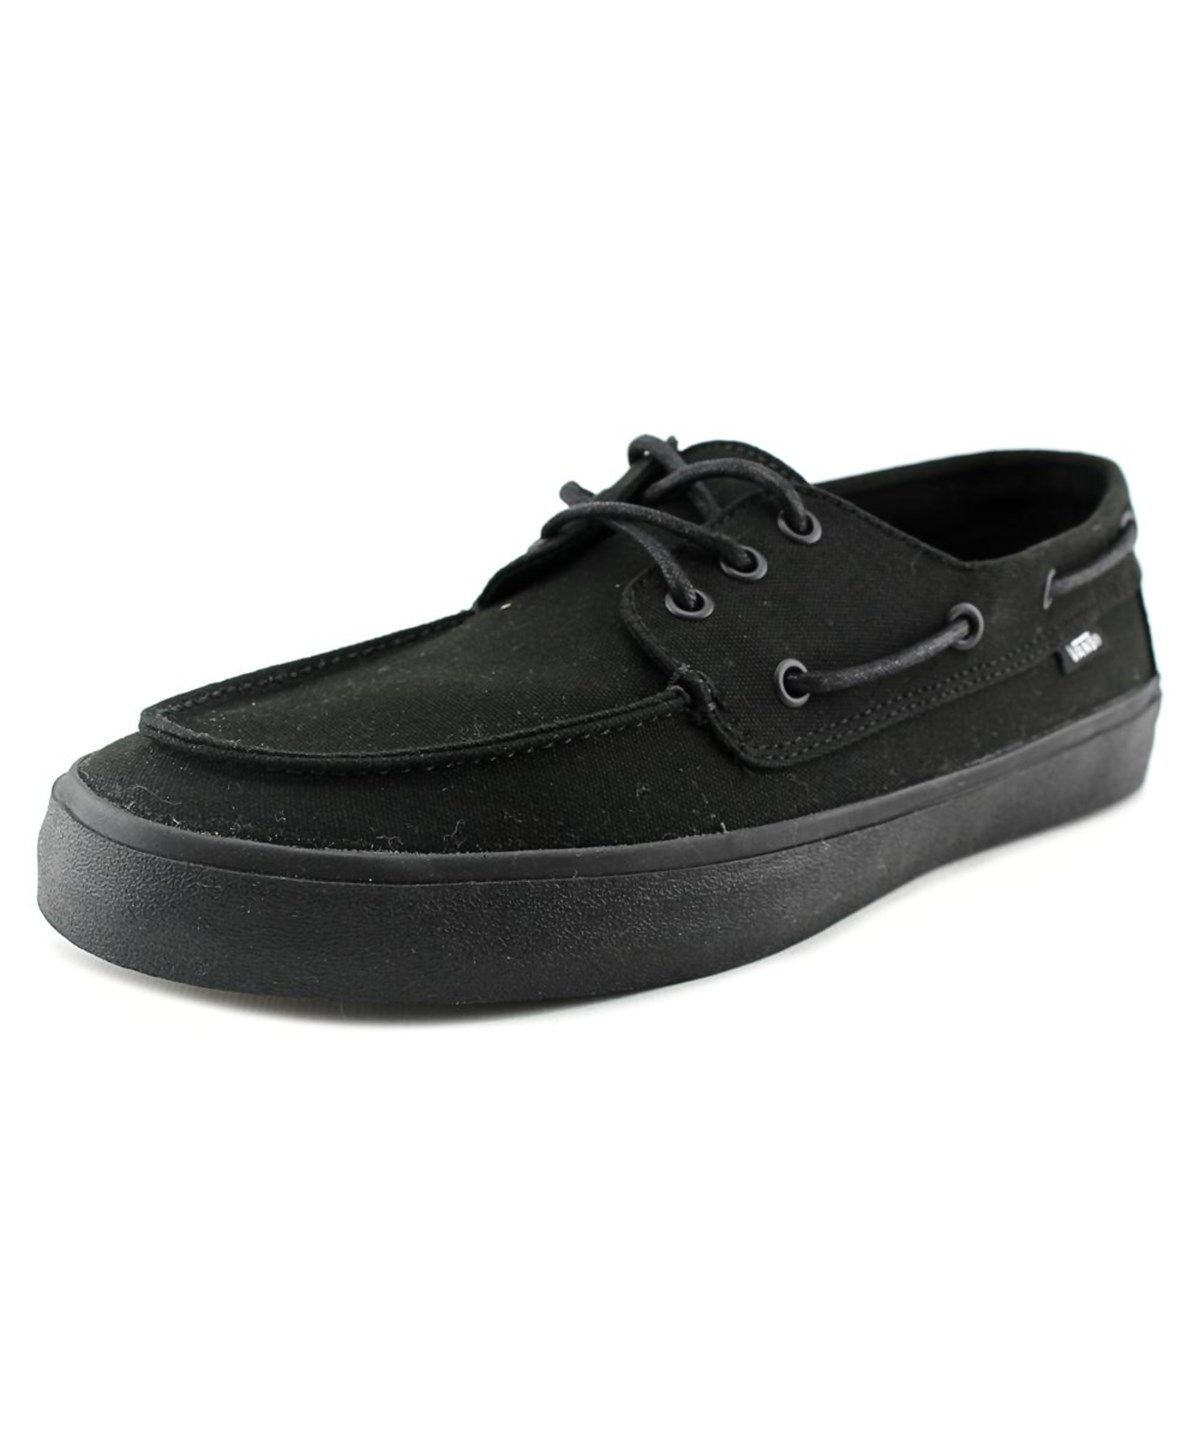 a21aae4d00b38 VANS VANS CHAUFFEUR MOC TOE CANVAS BOAT SHOE .  vans  shoes  oxfords ...